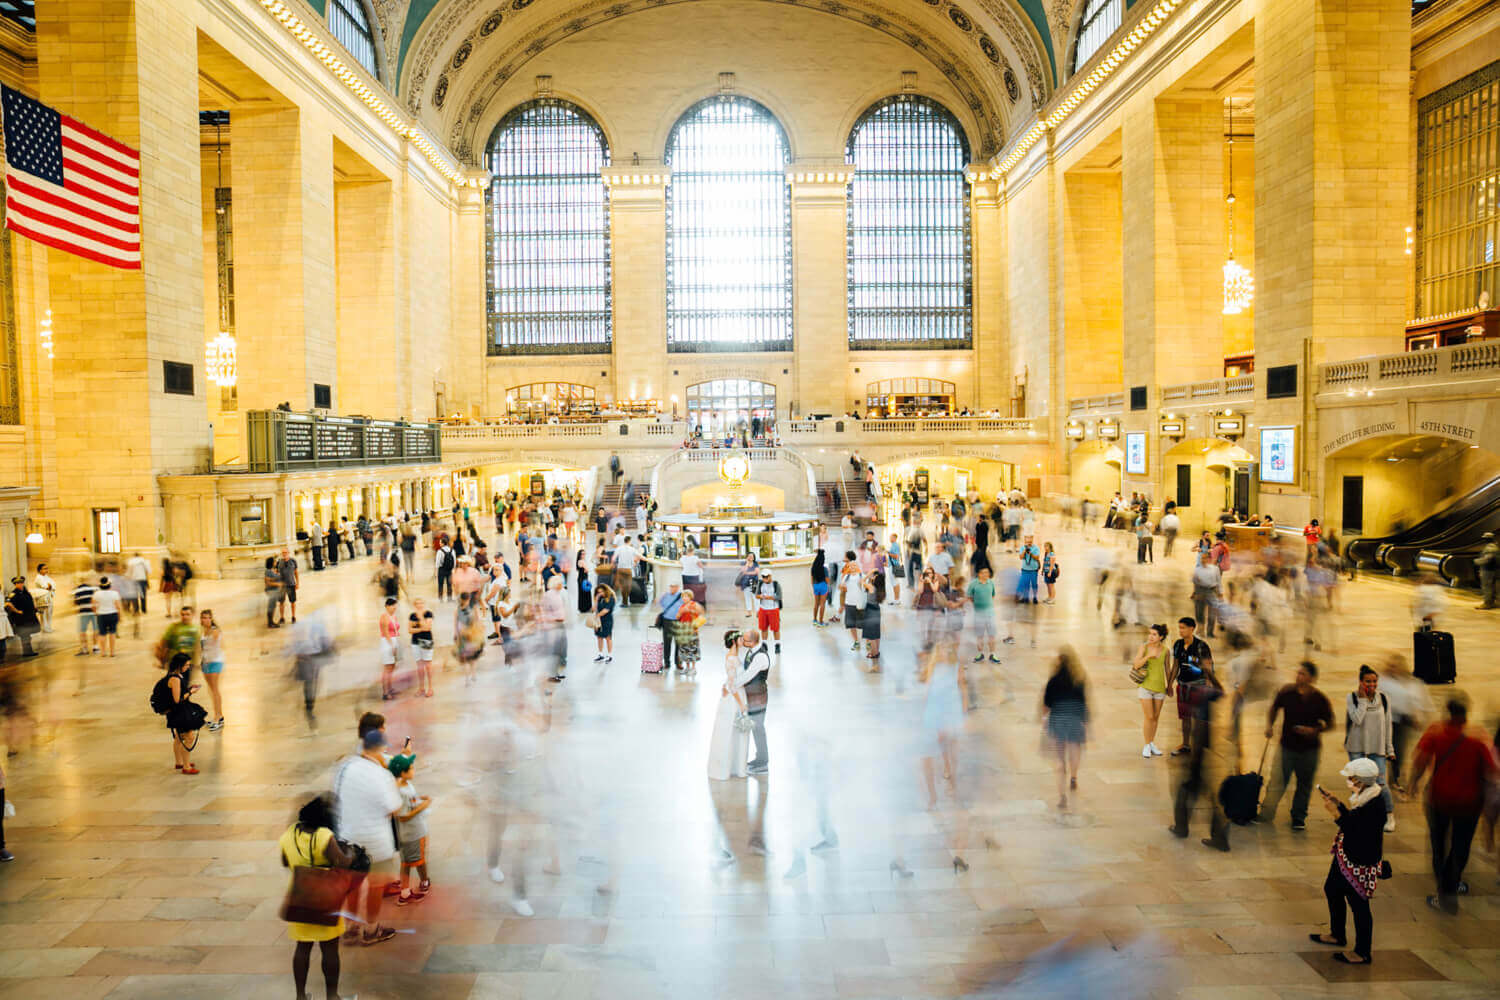 Wedding photos at Grand Central Terminal in New York City. Hochzeitsfotos am Grand Central Bahnhof in New York City